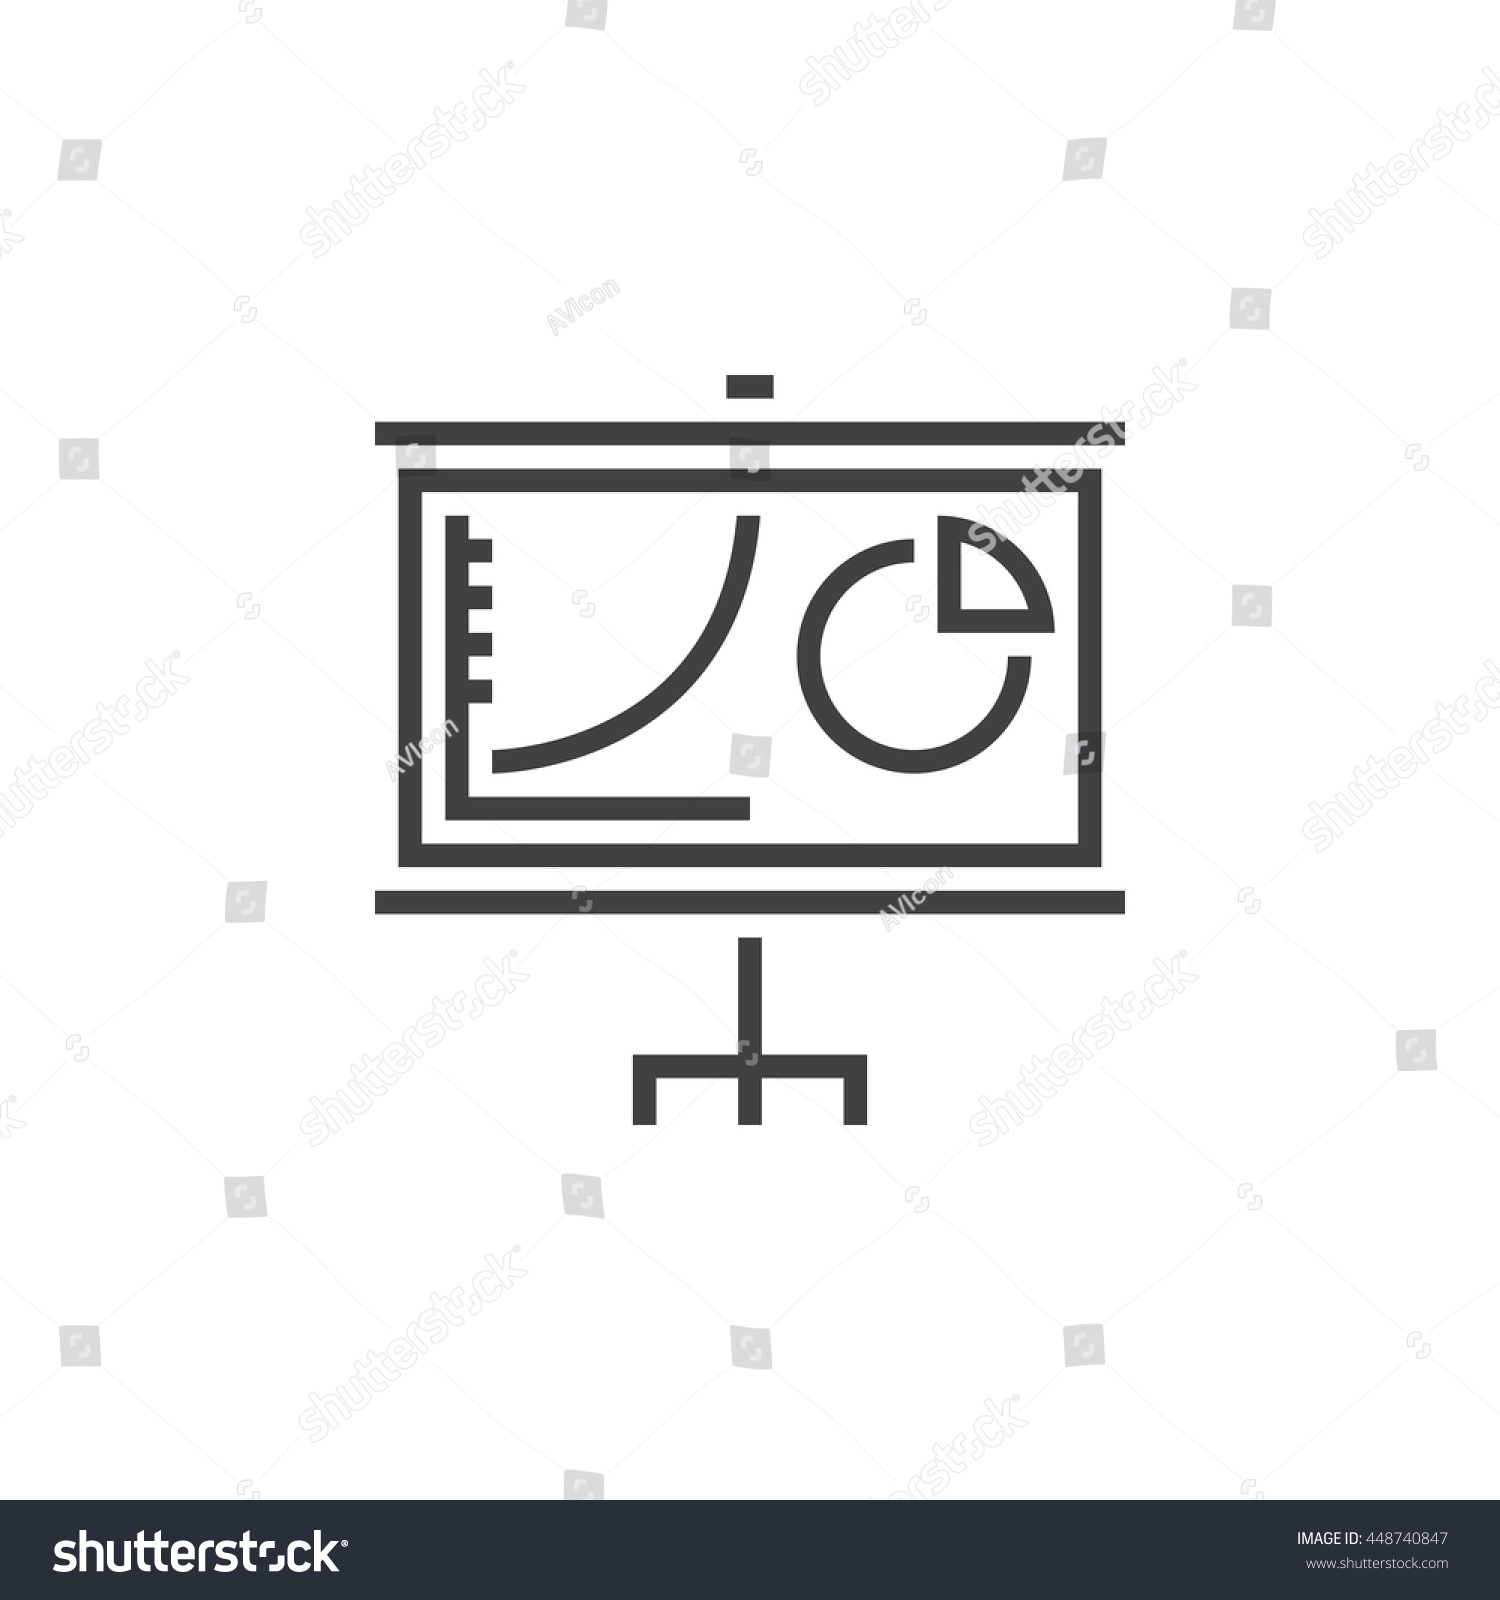 Chart board line icon outline vector stock vector 2018 448740847 chart board line icon outline vector logo linear pictogram isolated on white pixel ccuart Image collections